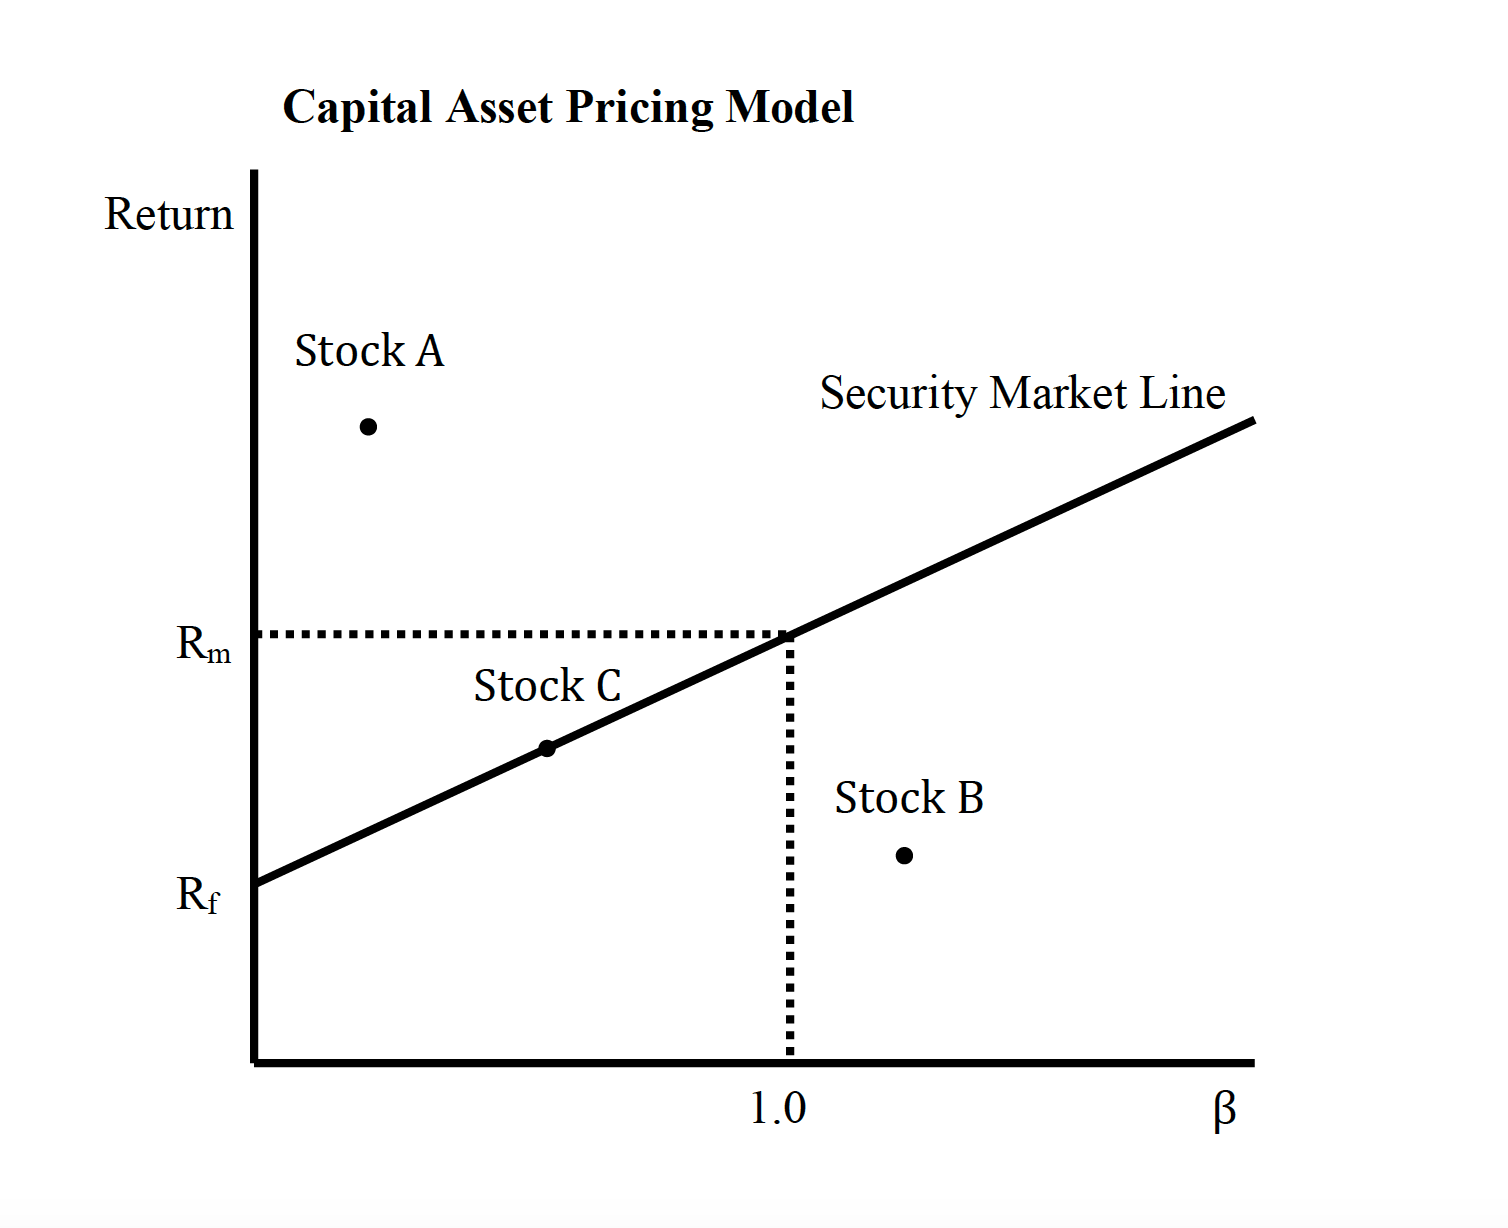 capital asset pricing model and cost Capm see: capital asset pricing model capital asset pricing model a model that attempts to describe the relationship between the risk and the expected return on an investment.